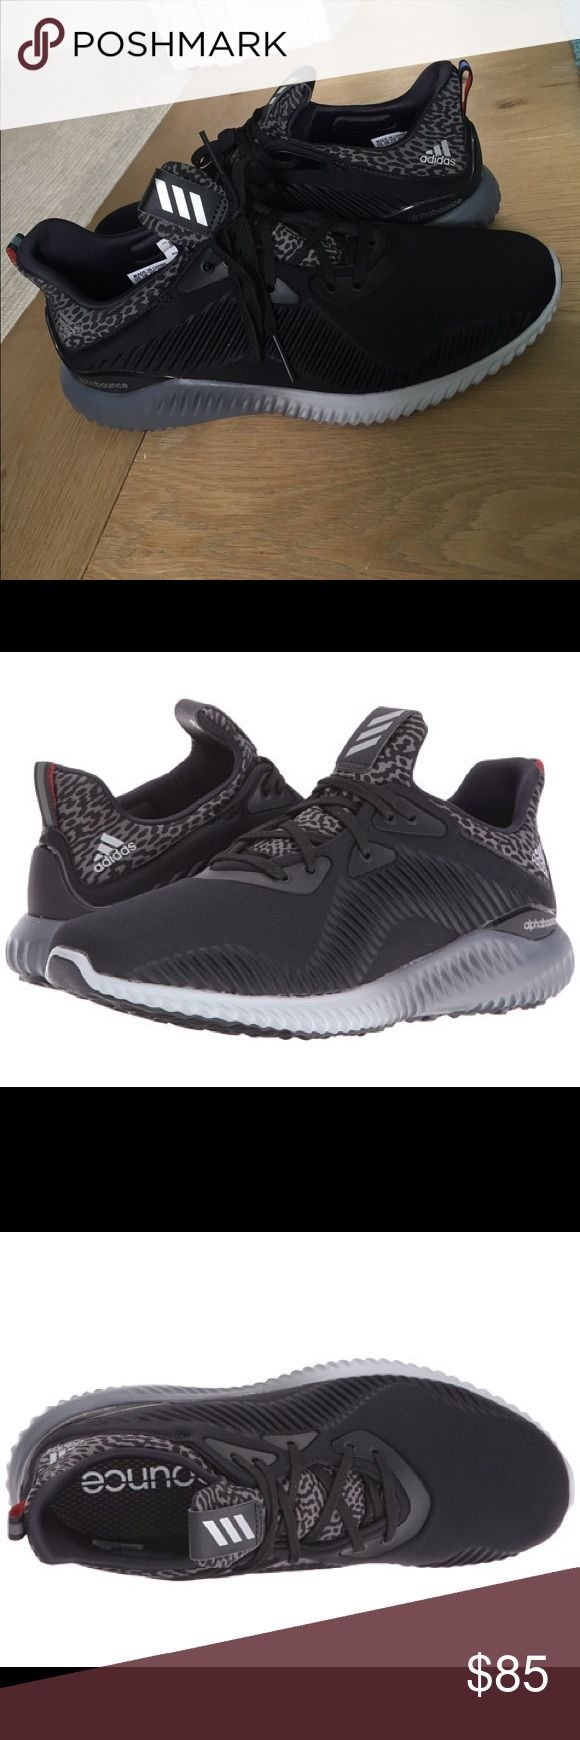 Adidas Alphabounce shoes (never been worn)